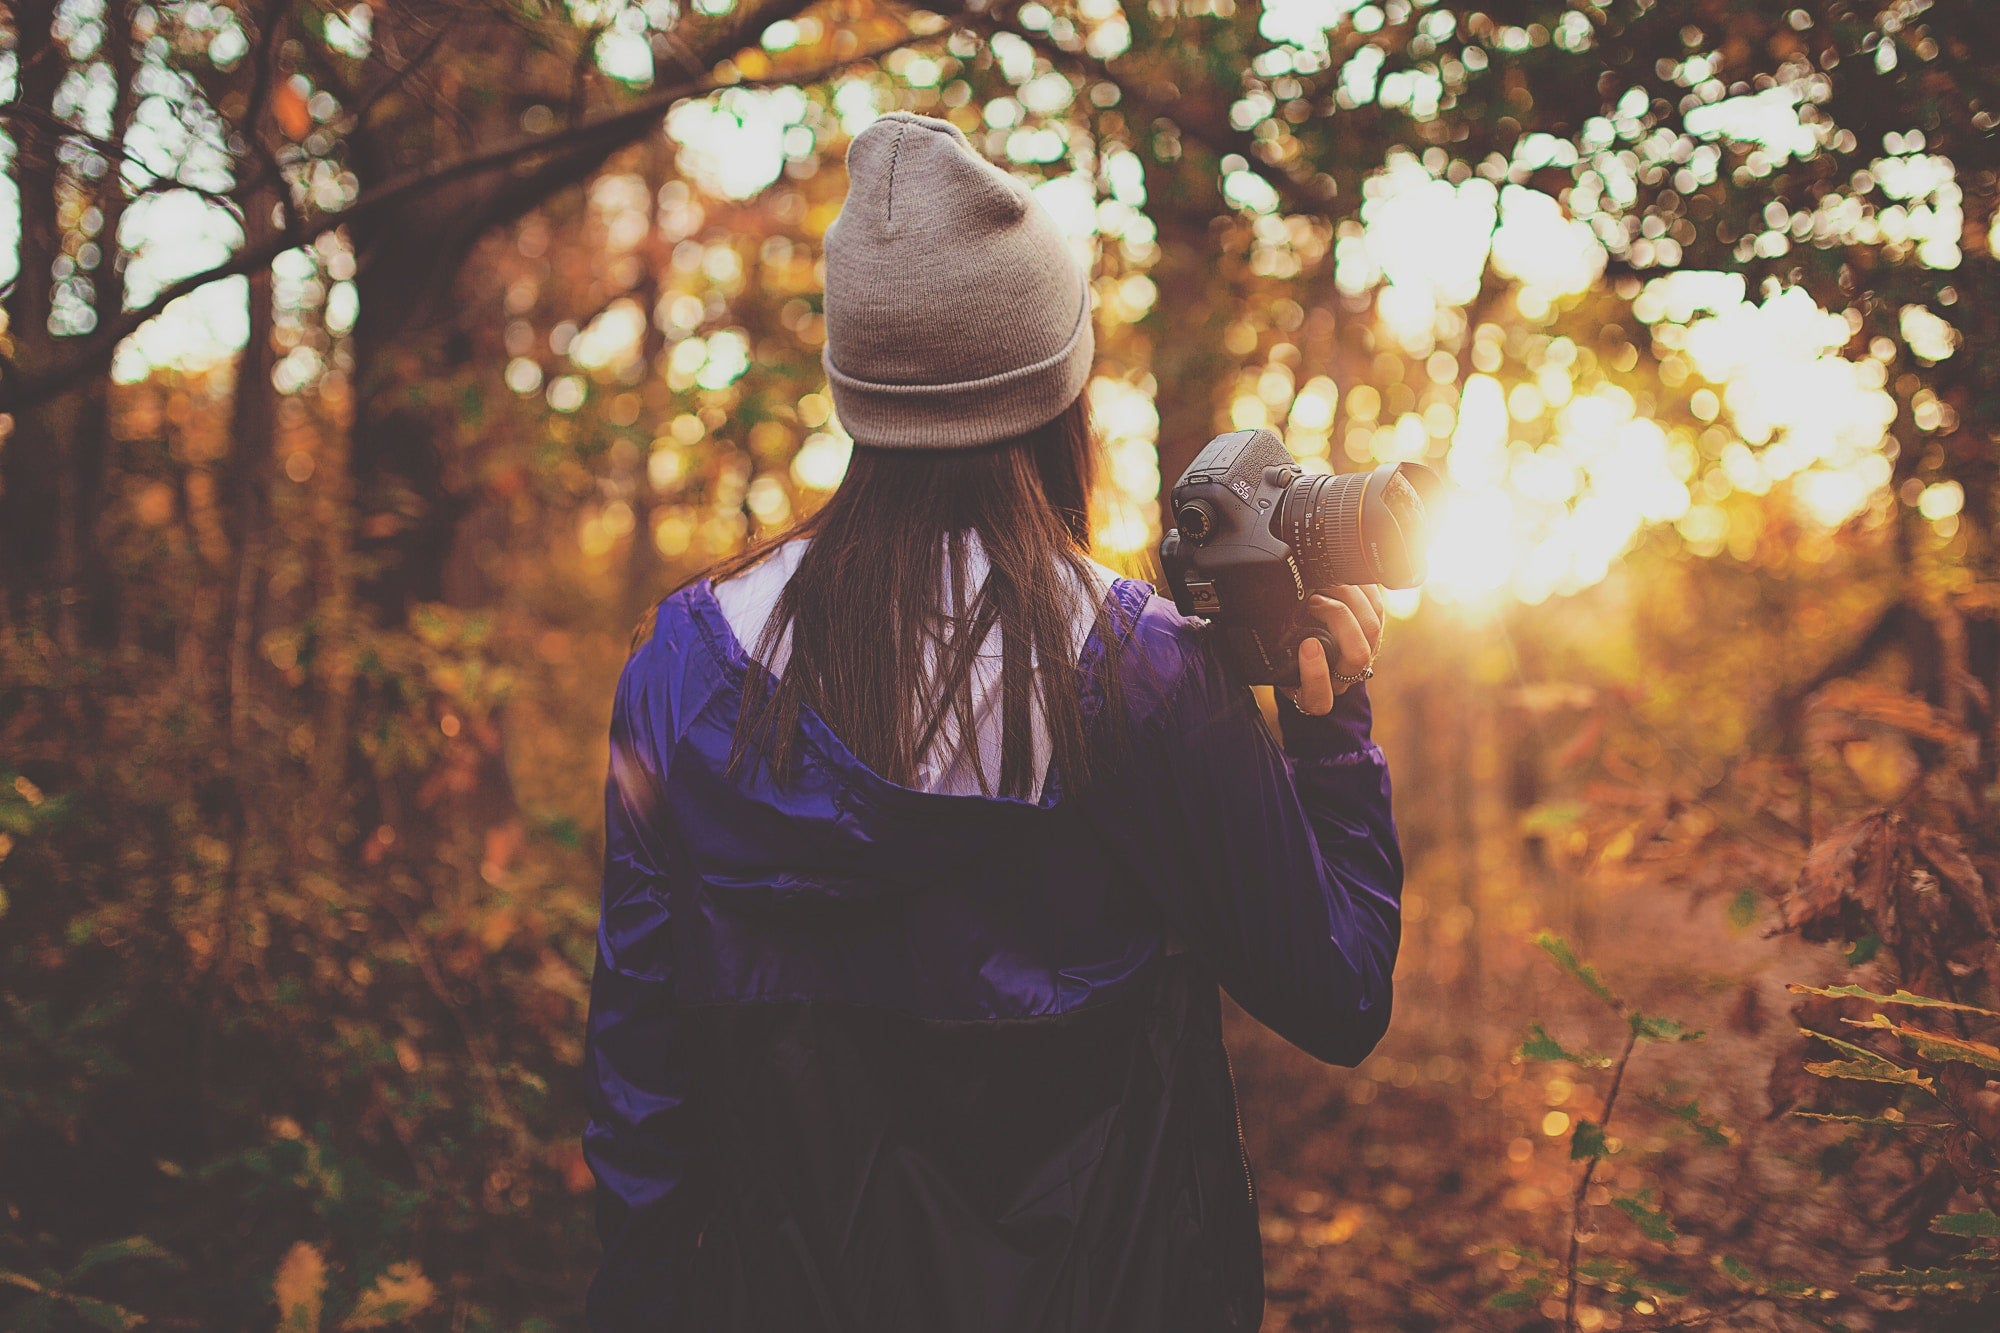 Woman with Camera Capturing Autumn Photos